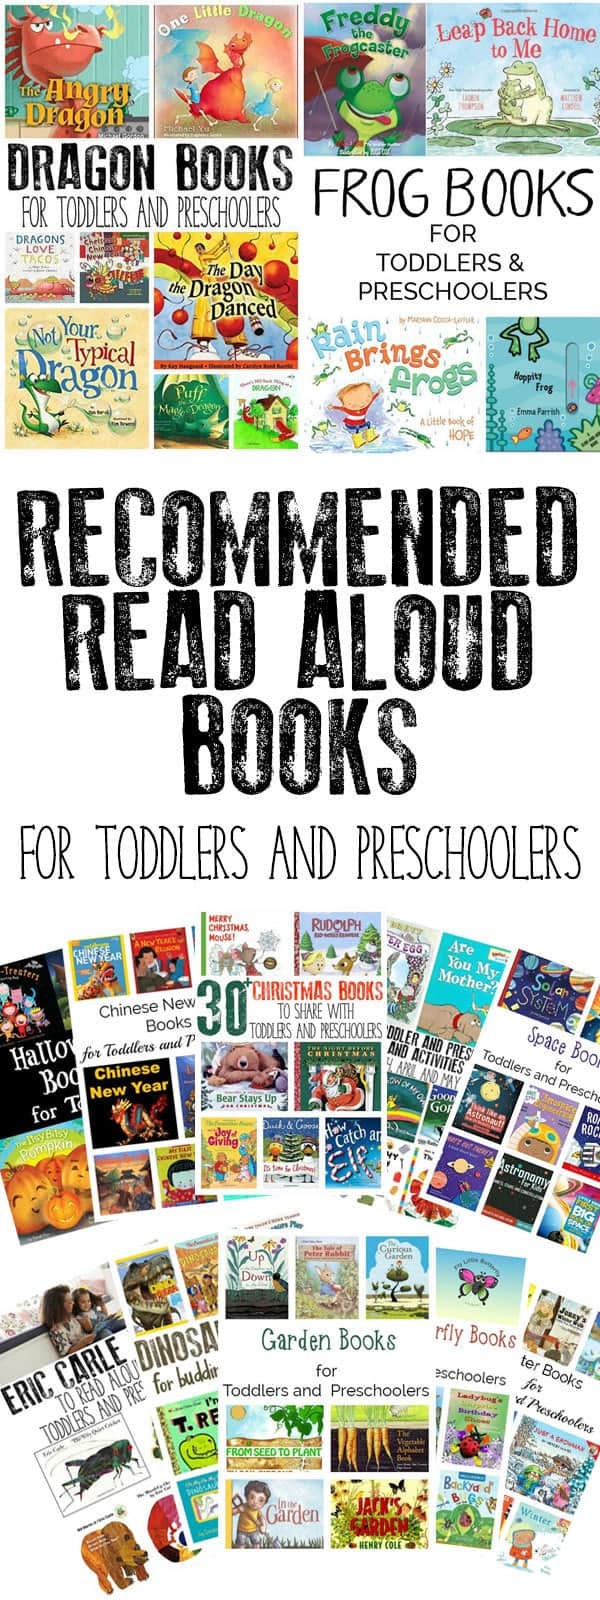 Sharing books together with your young children is a joy, reading aloud, sharing the stories and pointing out the illustrations. Knowing which are good and which books aren't worth it can be challenging so check out the recommended books for reading together from parents and educators.